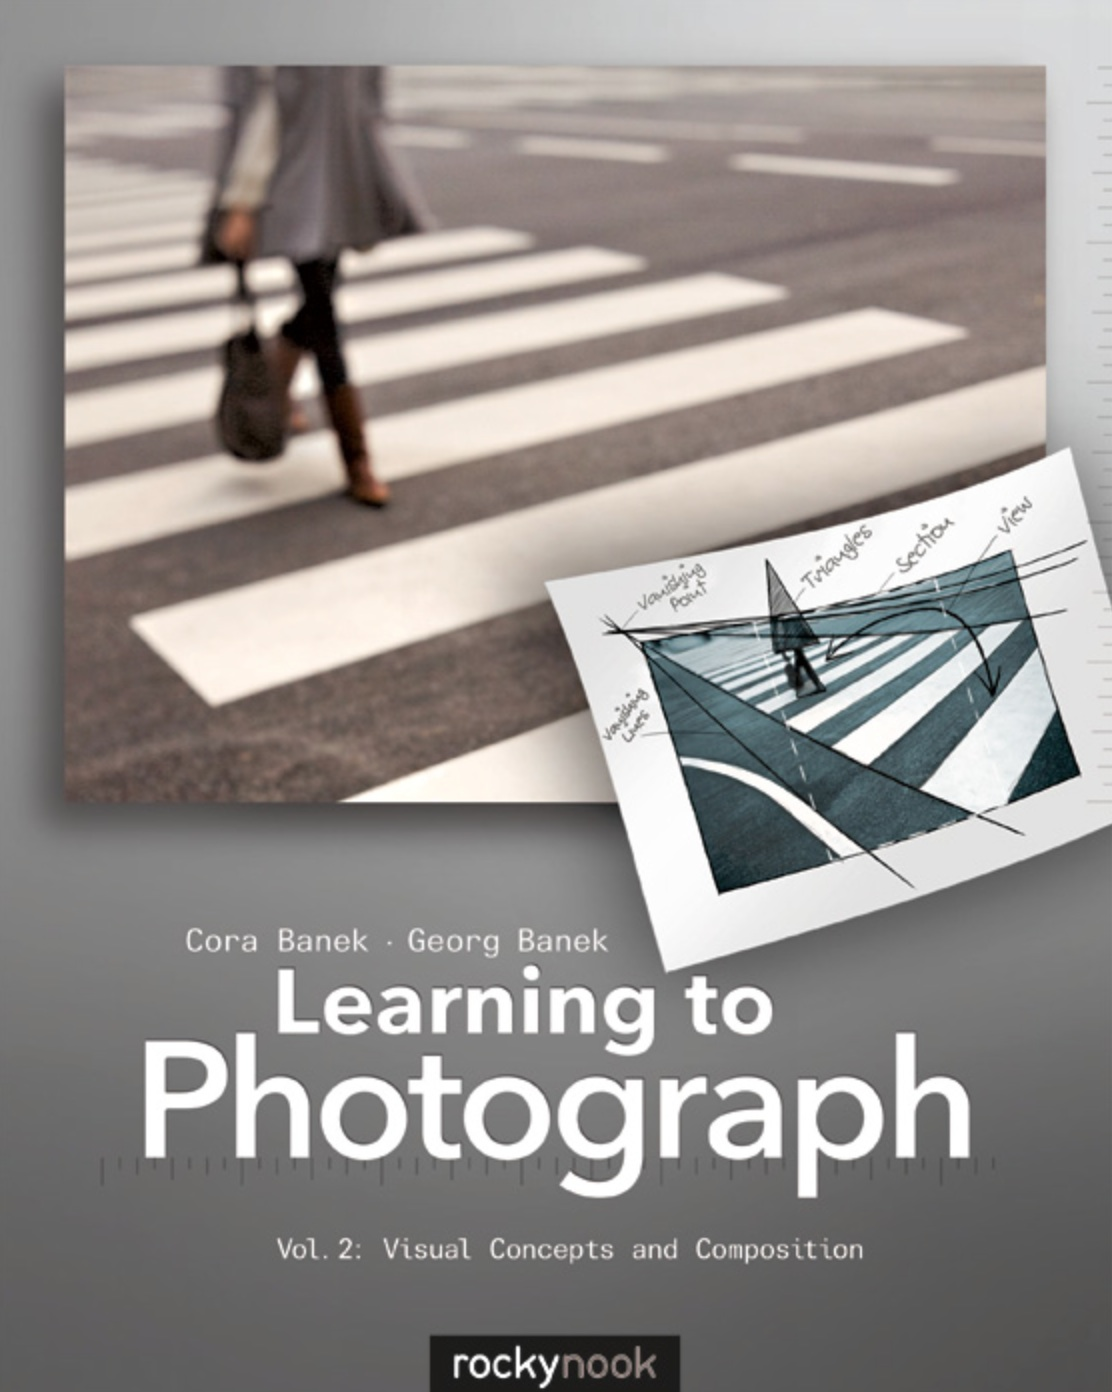 http://thedigitalstory.com/2014/09/30/learning-to-photograph-vol2.jpg